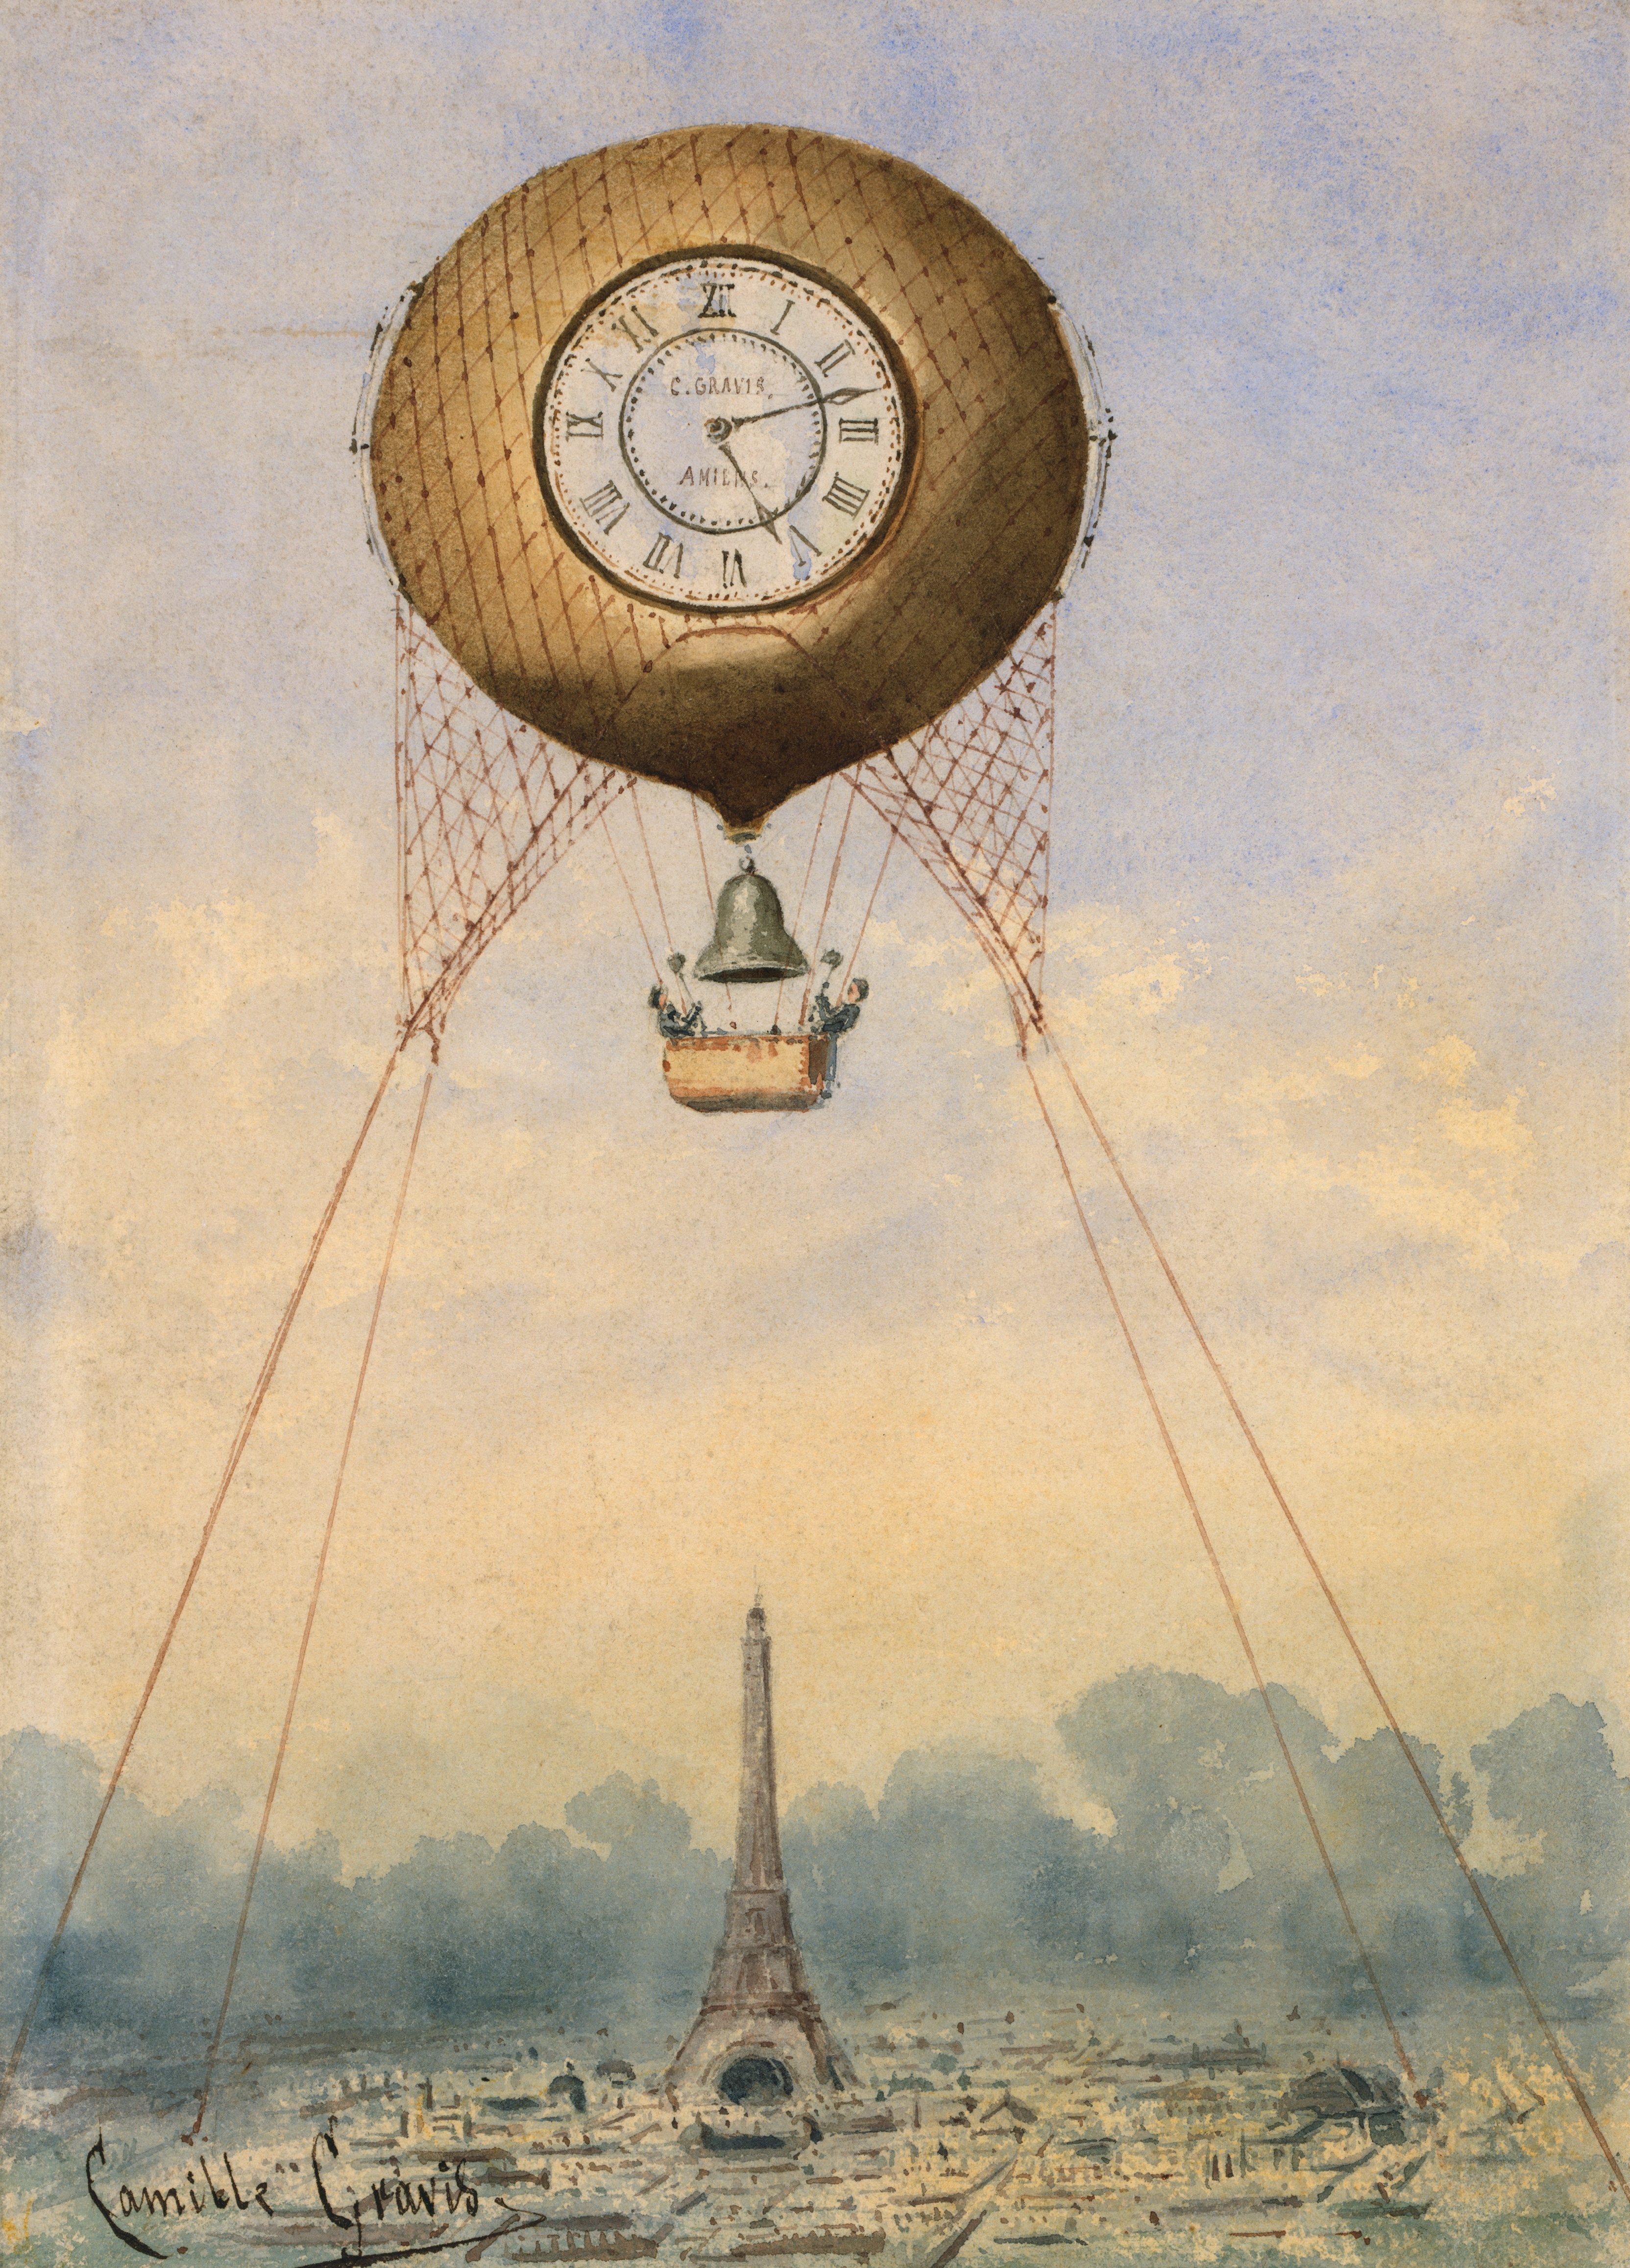 Captive balloon with clock face and bell, Camille Gravis, circa 1889